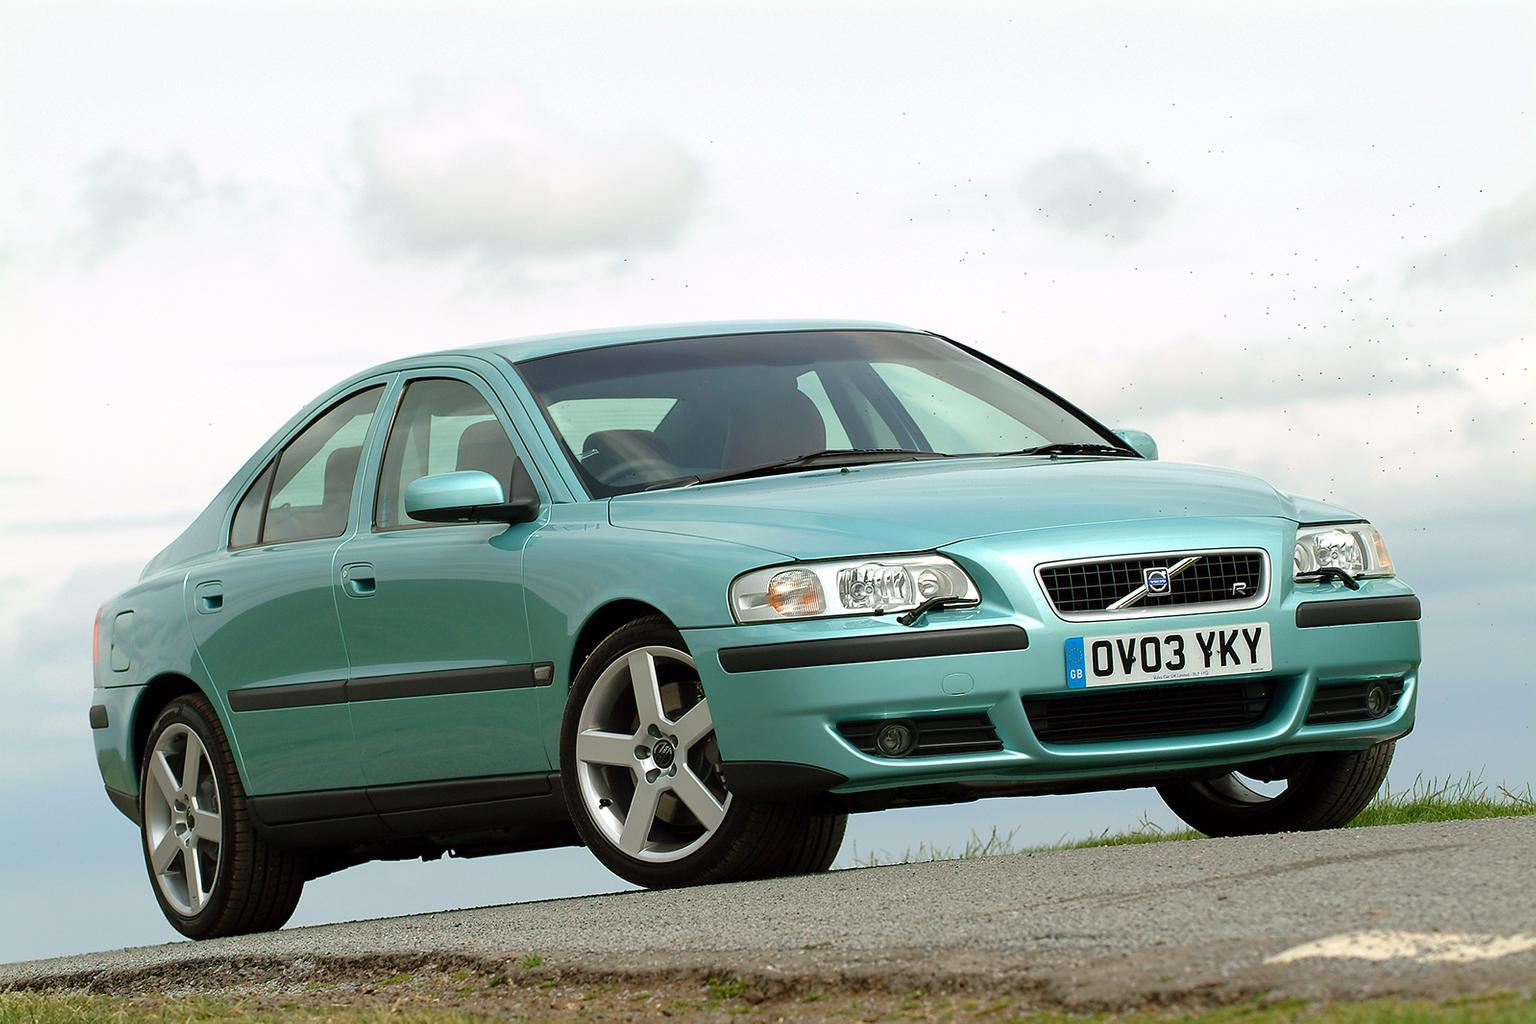 Best used executive cars for less than £2000 (and the ones to avoid)